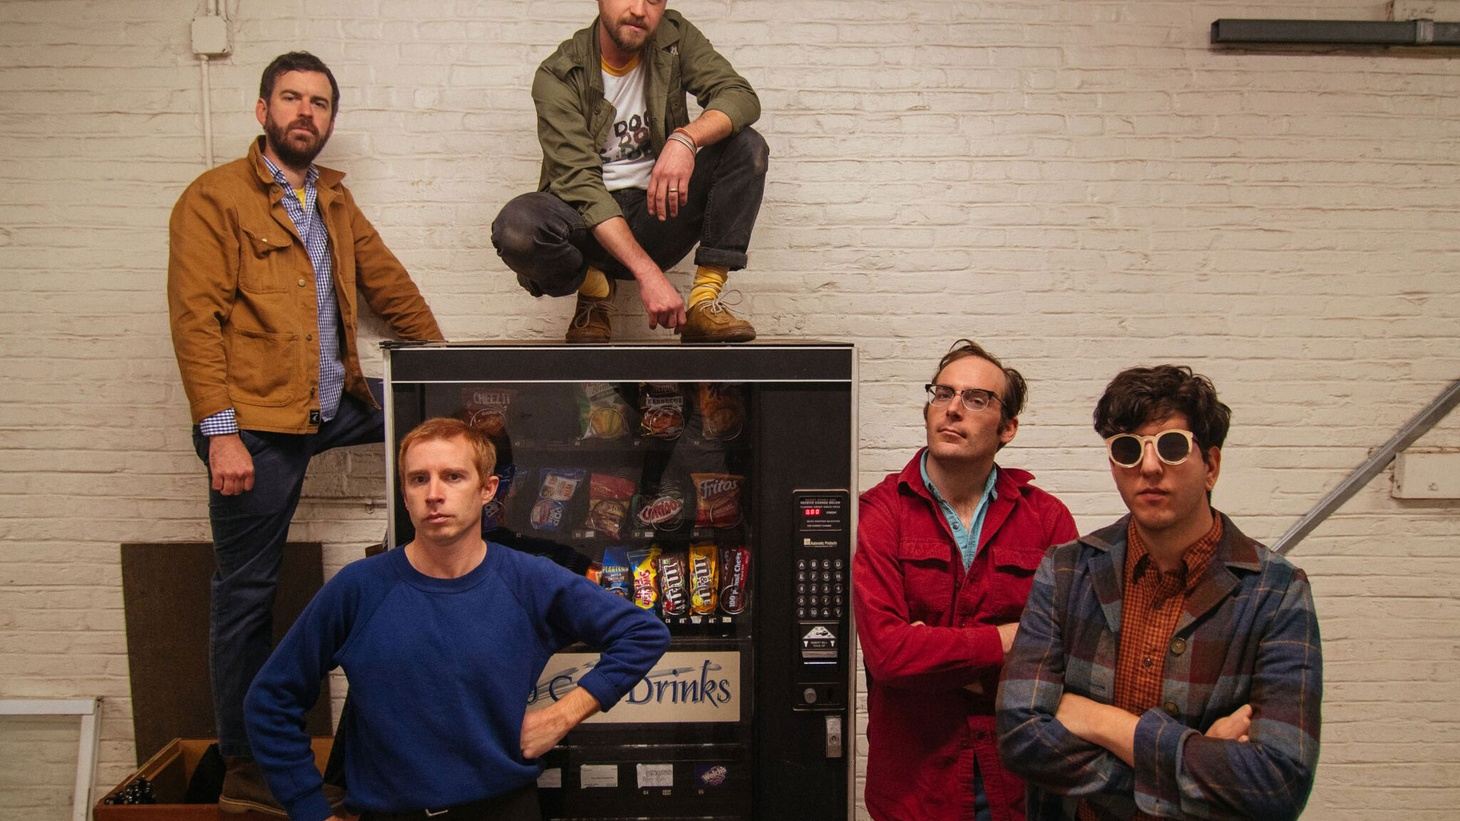 Scott McMicken has spent the last decade and a half as co-frontman of Dr. Dog. Born from a journey of doubt and later discovery, Dr. Dog's 10th album is fueled by one of their most creative periods to date.